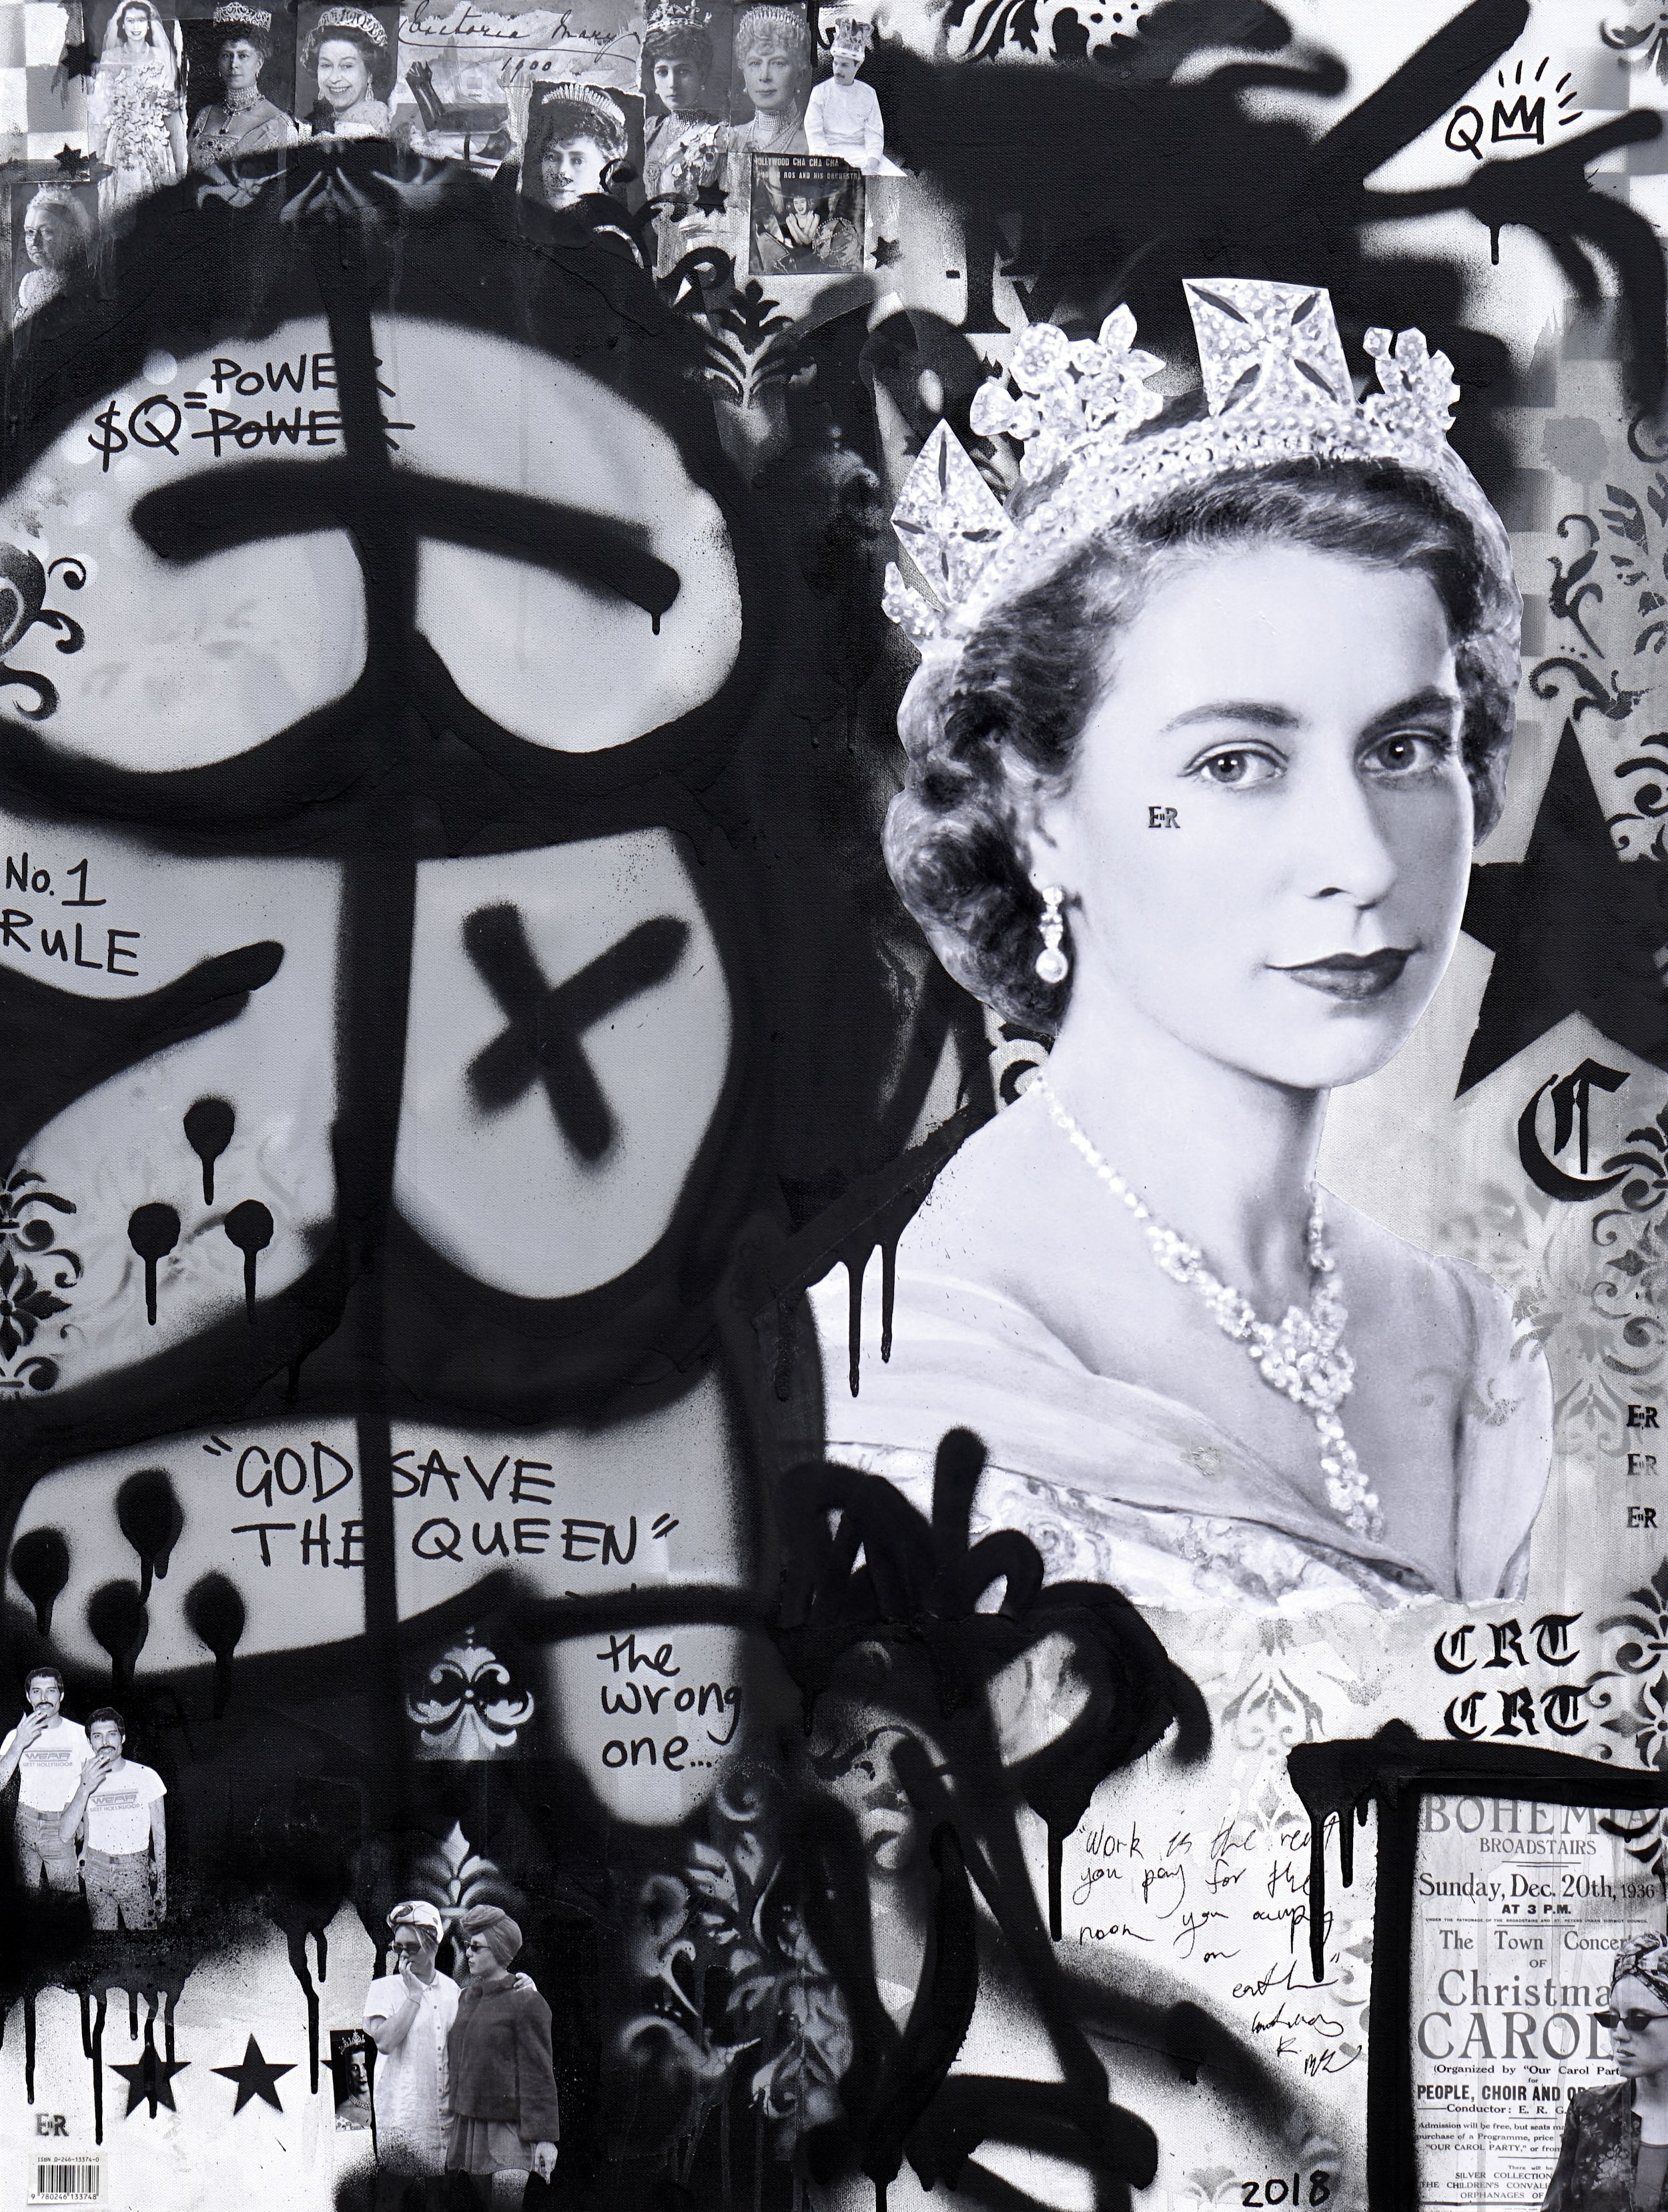 God Save The Queen  ' Crack Rock n' Death Toll'  81cm x 106cm Acrylic and Collage on Canvas 2018   Contact